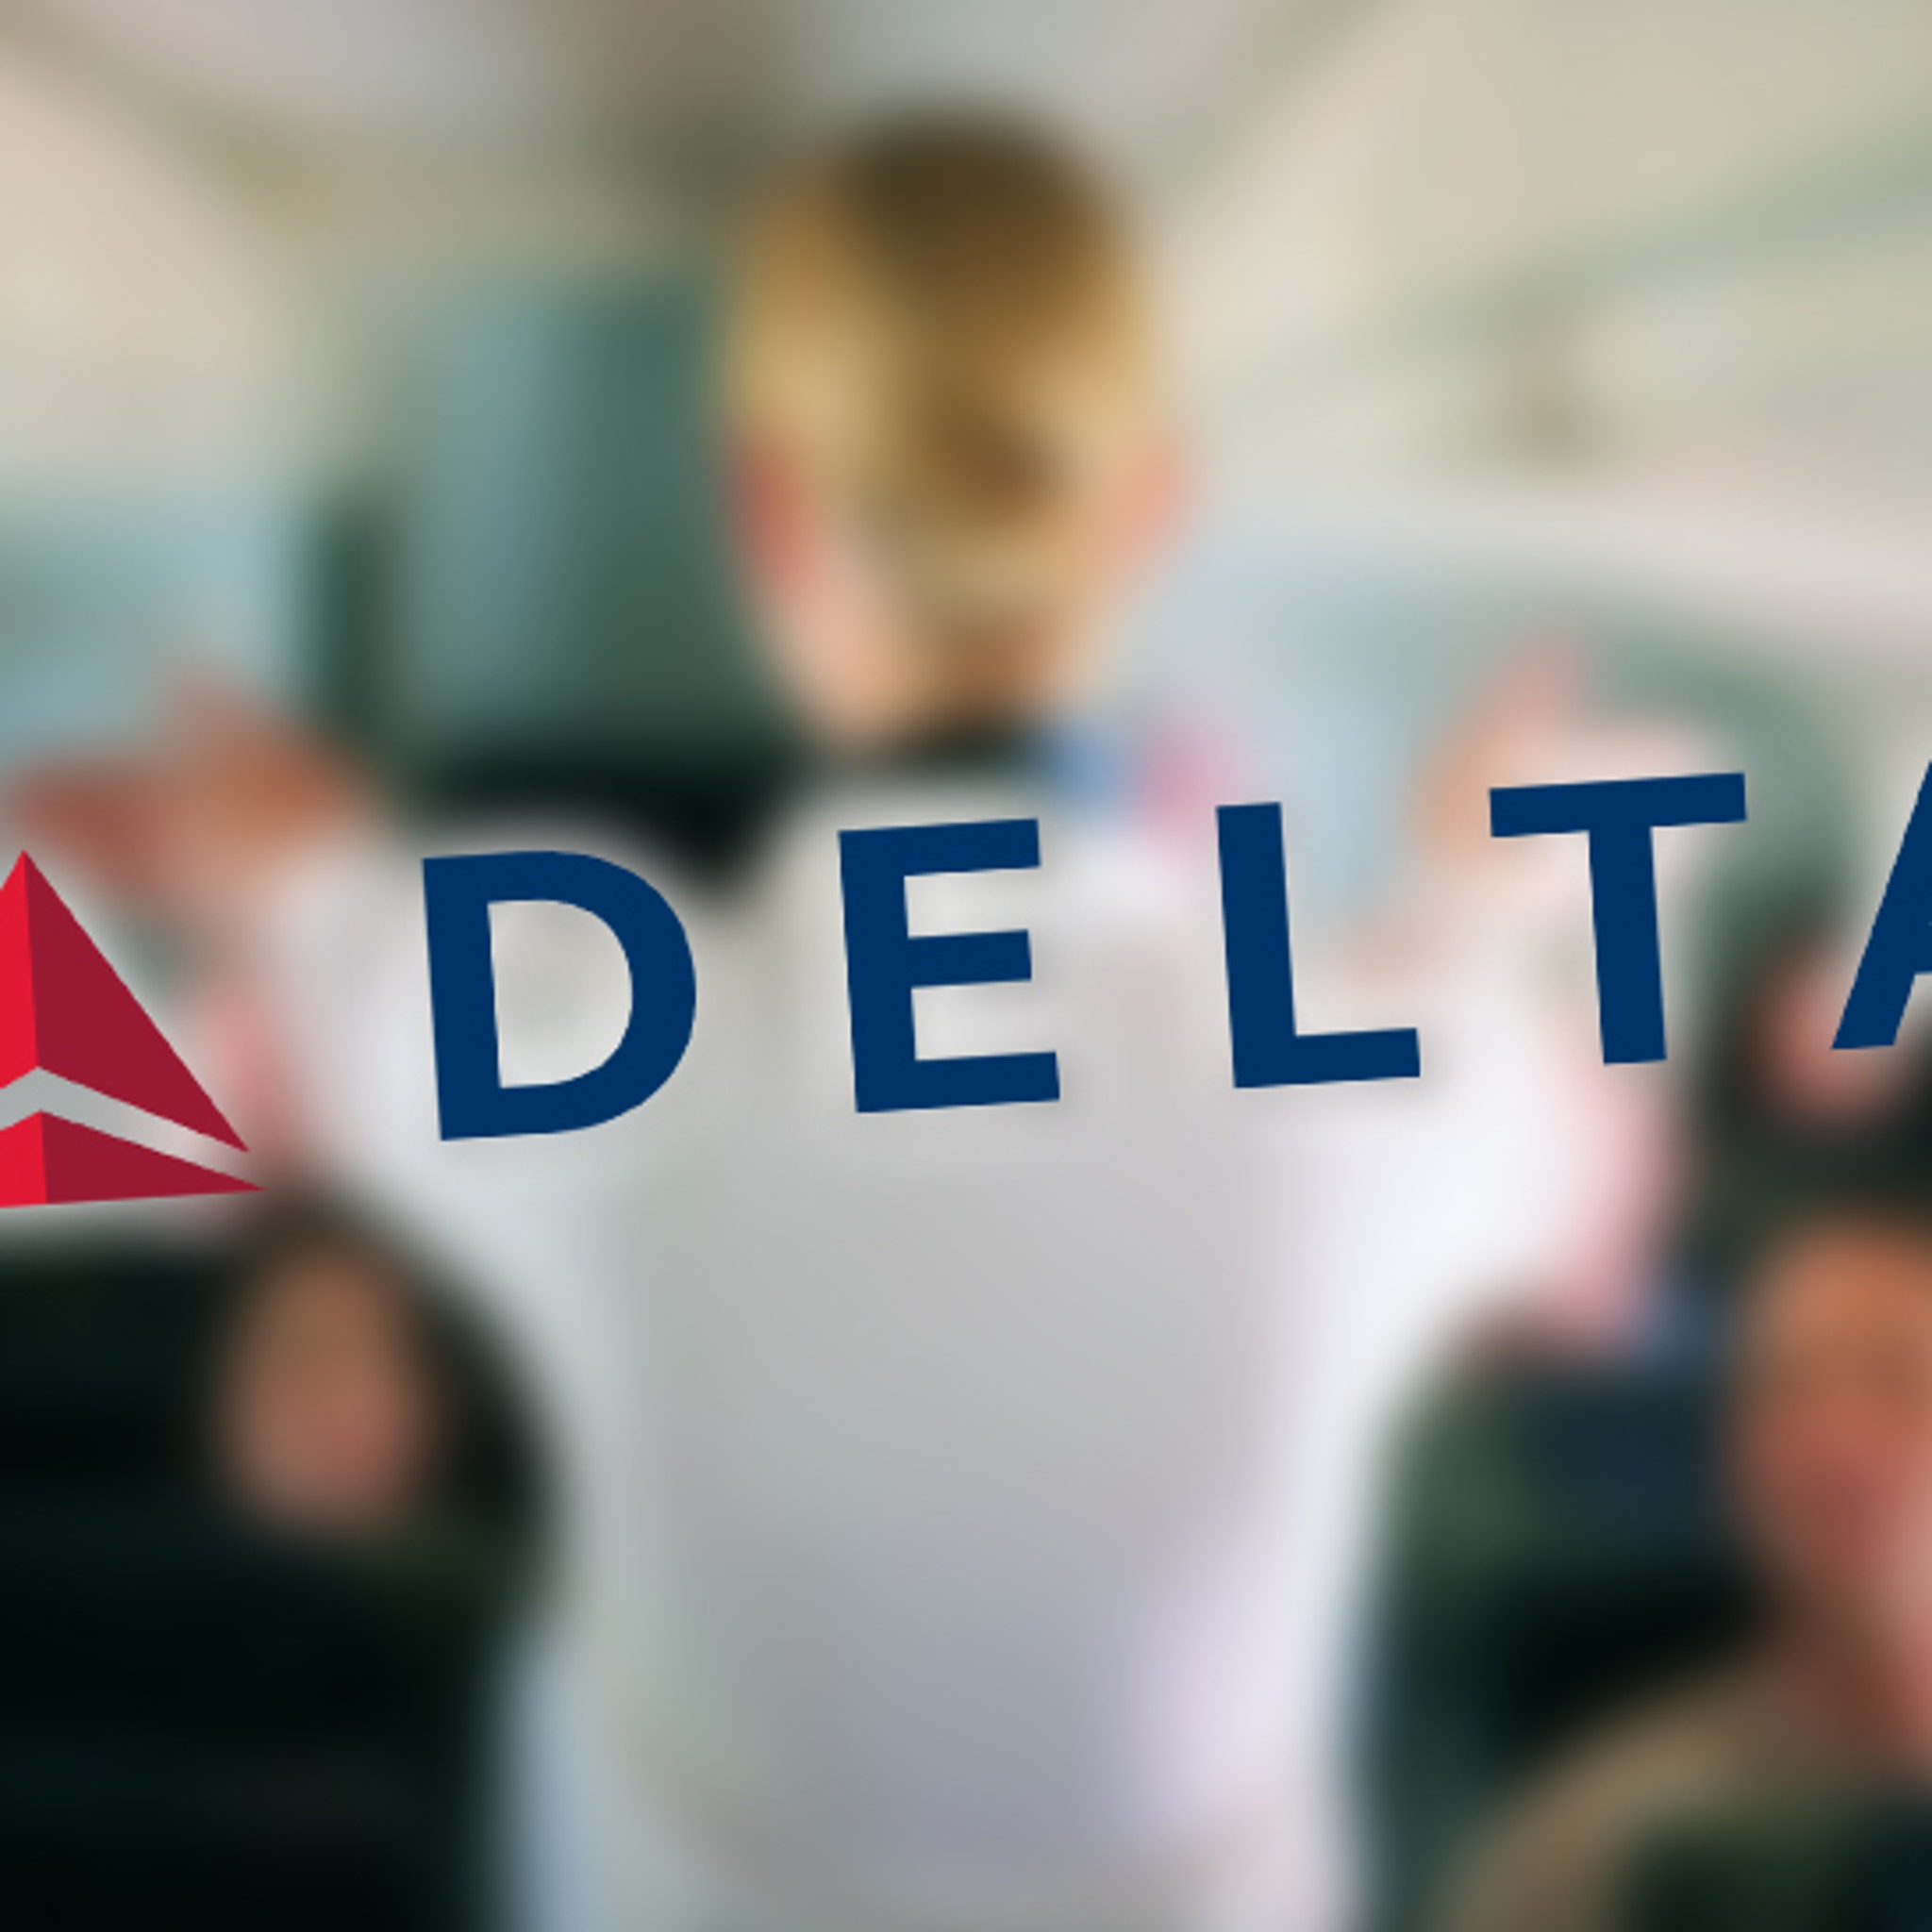 Delta Air Lines Sued by 4 Flight Attendants Alleging Rampant Anti-Semitism (UPDATE)